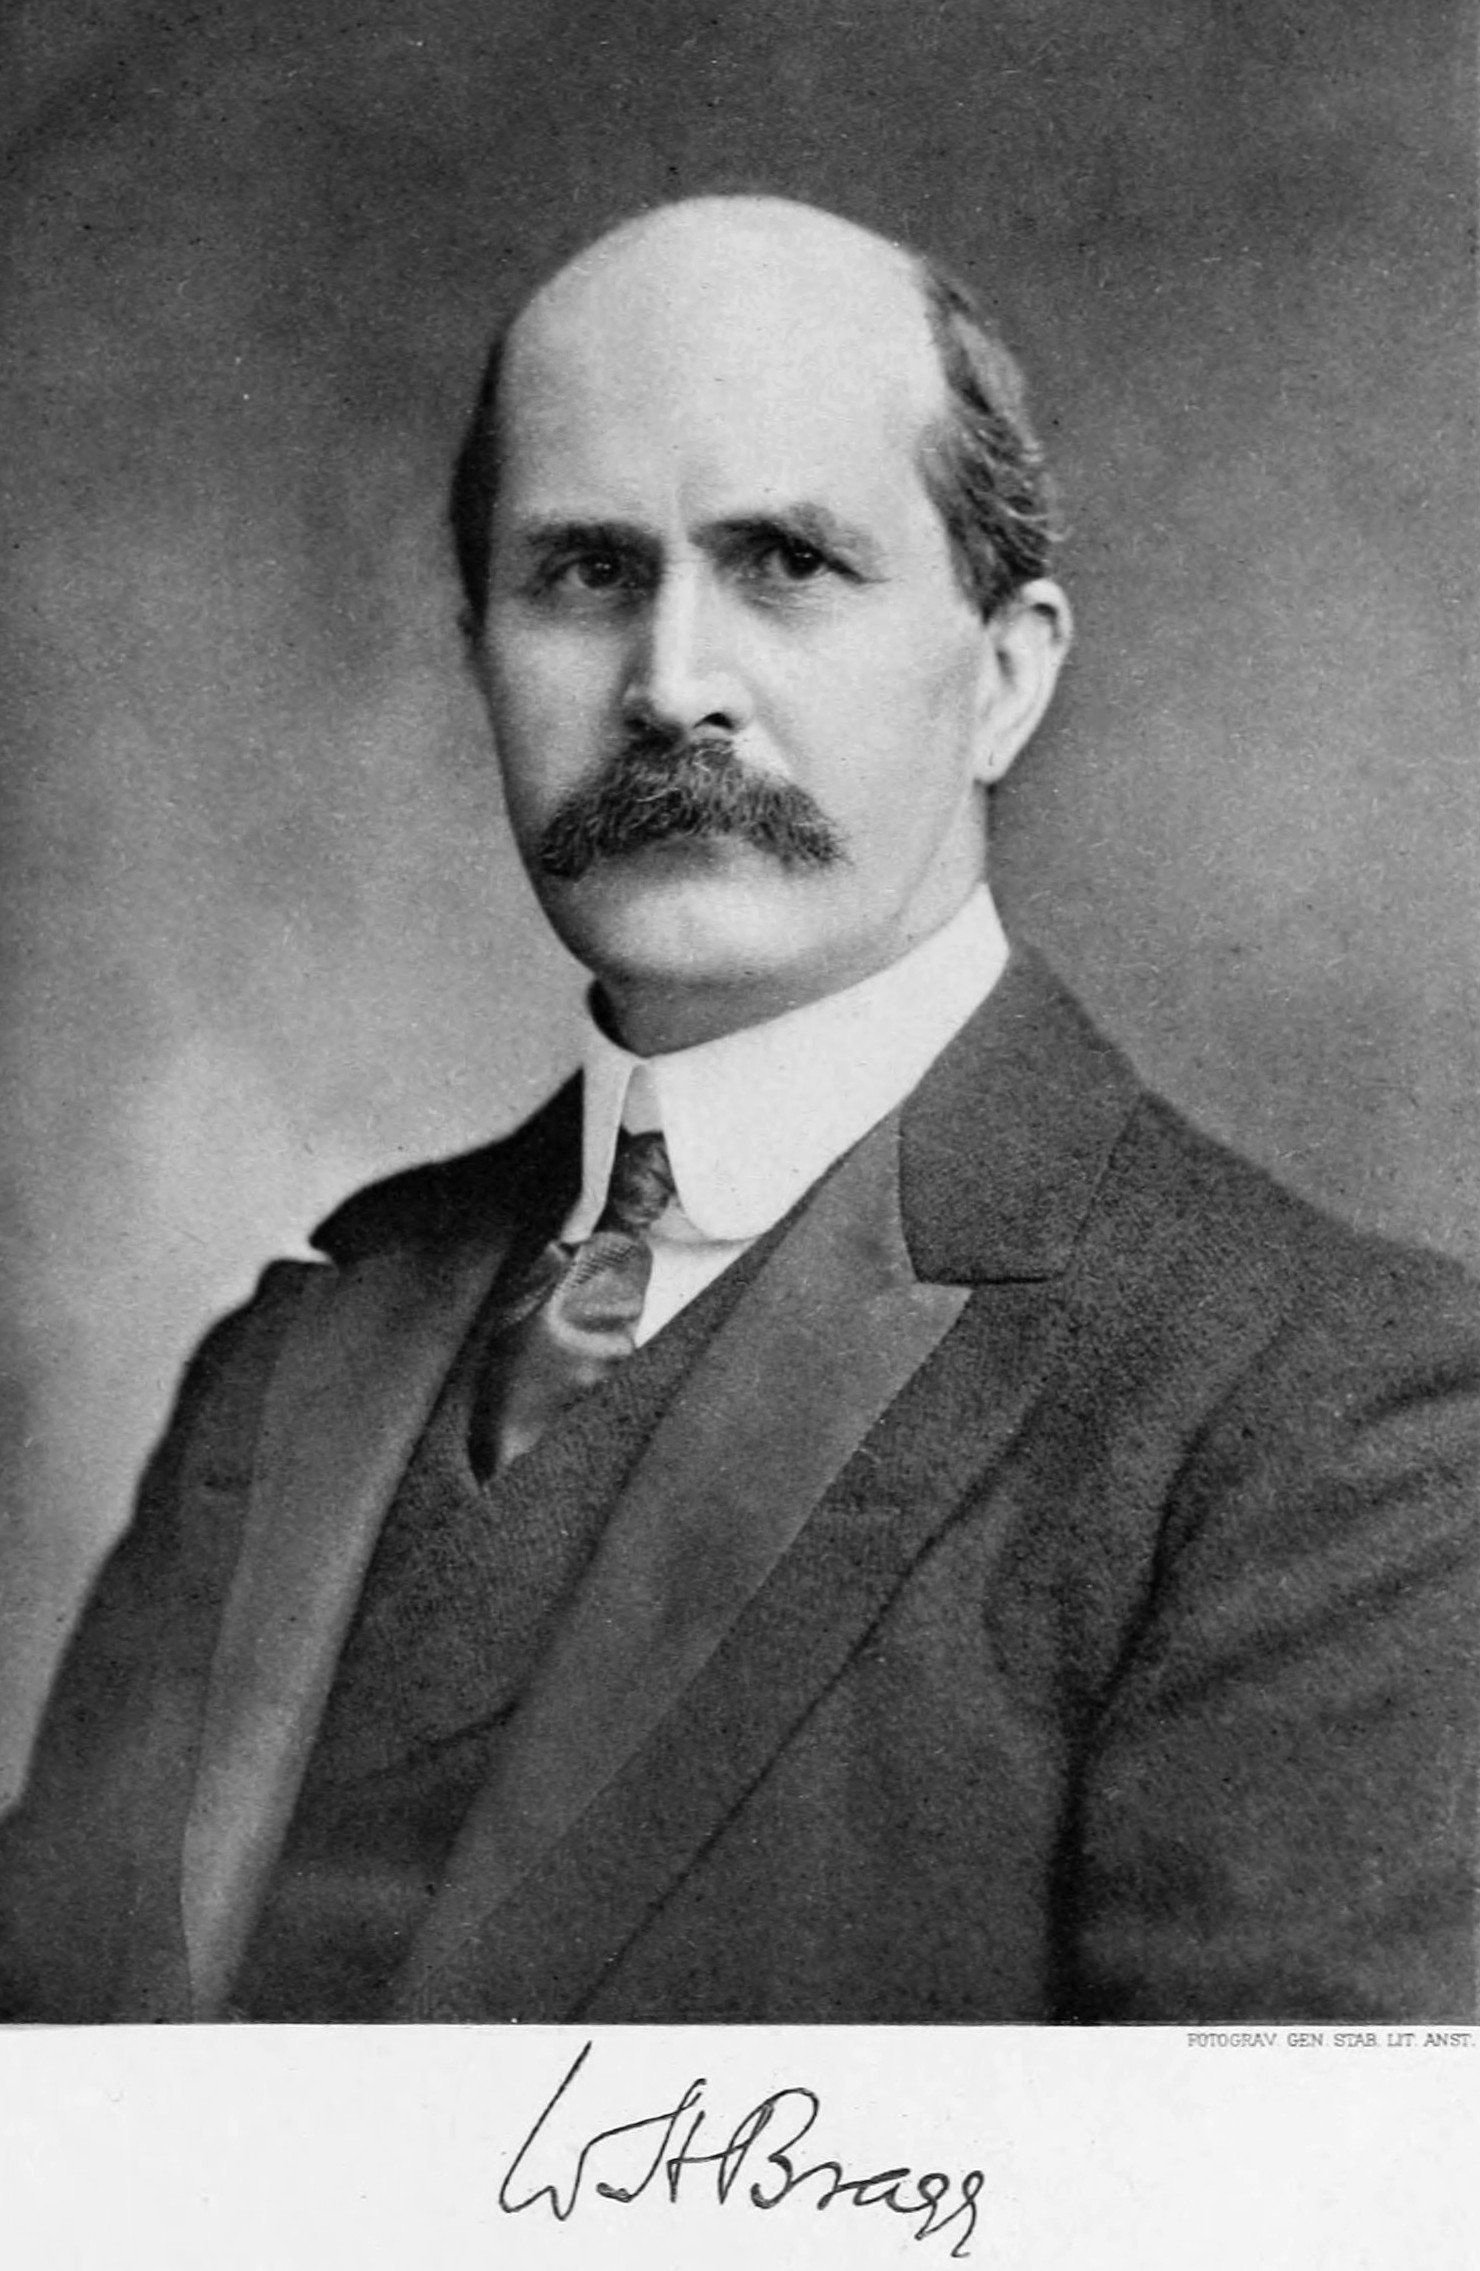 a biography of sir william lawrence bragg a physicist and nobel prize winner Create biography login sign up maurice wilkins  max perutz james watson erwin chargaff herbert wilson william lawrence bragg john randall (physicist.